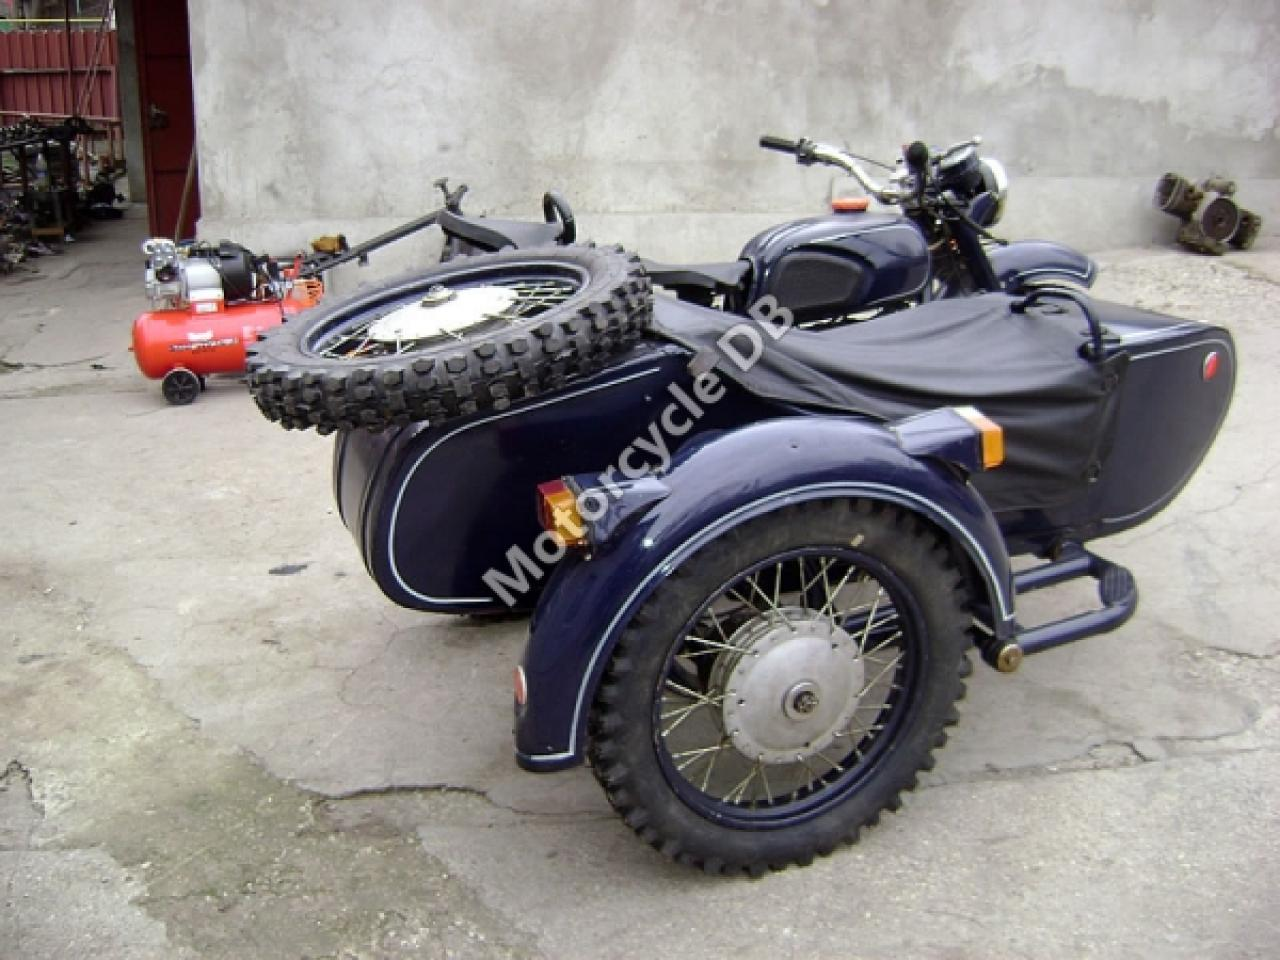 Dnepr MT 10 with sidecar 1977 images #71410